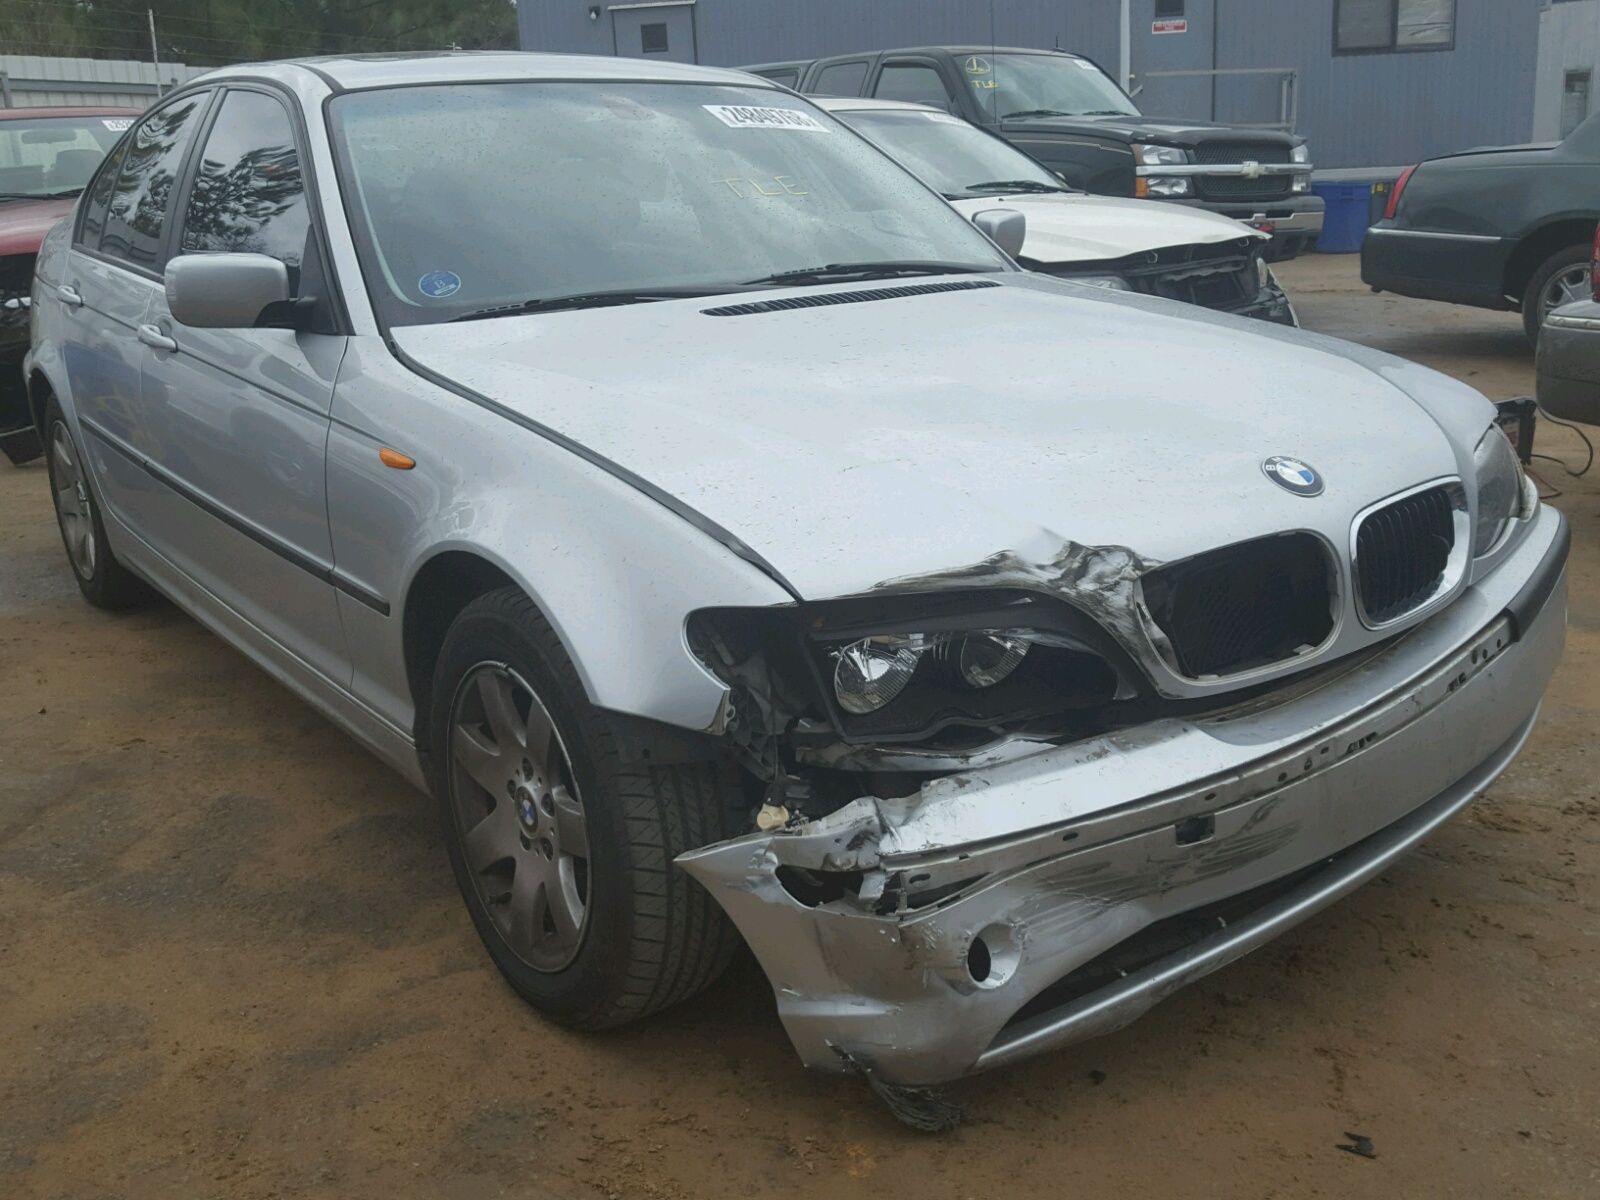 Auto Auction Ended On VIN WBAACXEF BMW I In AR - 840 bmw 2014